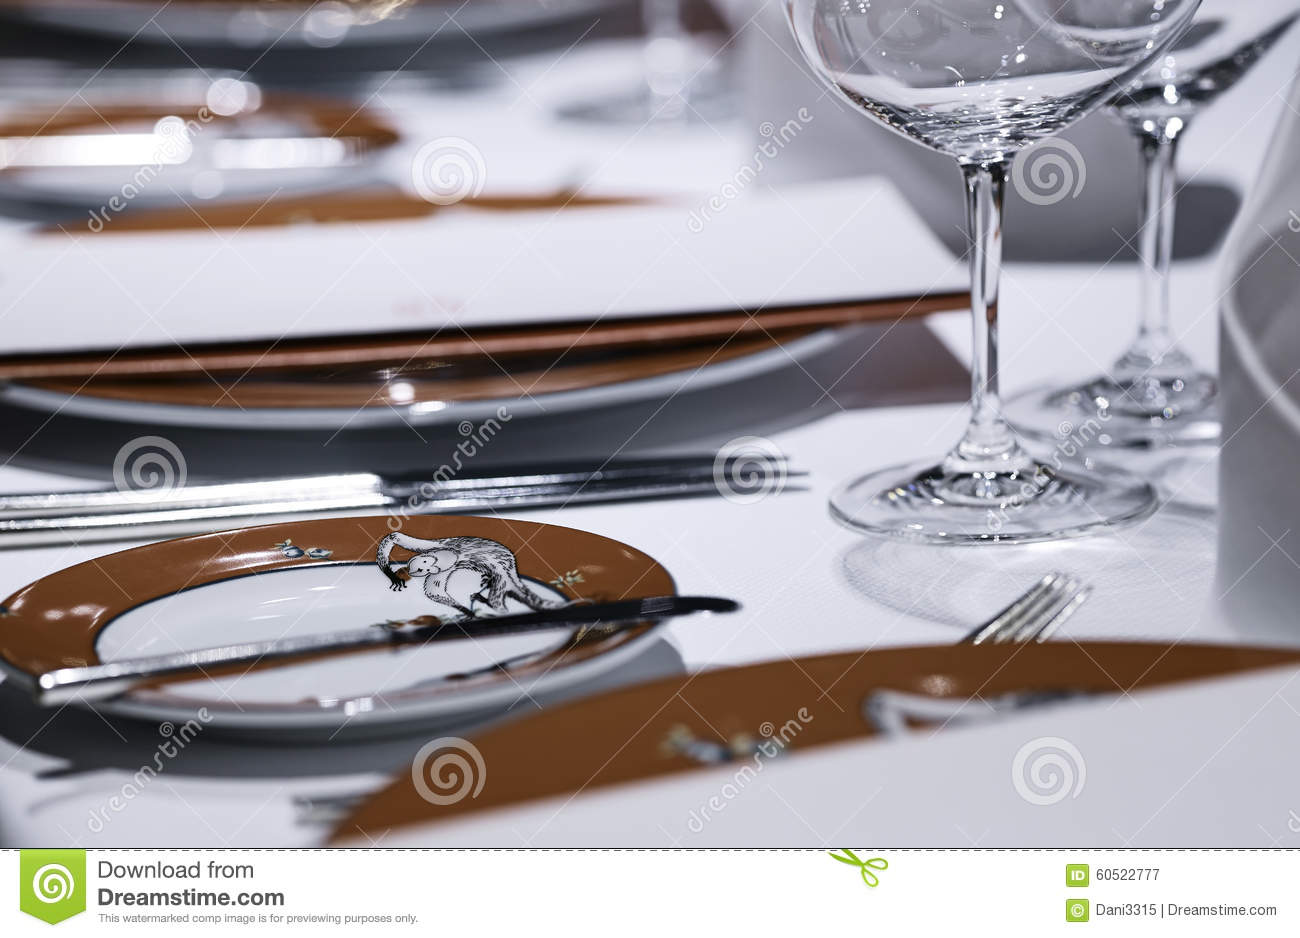 Formal Dining Table Set Up Royalty-Free Stock Image